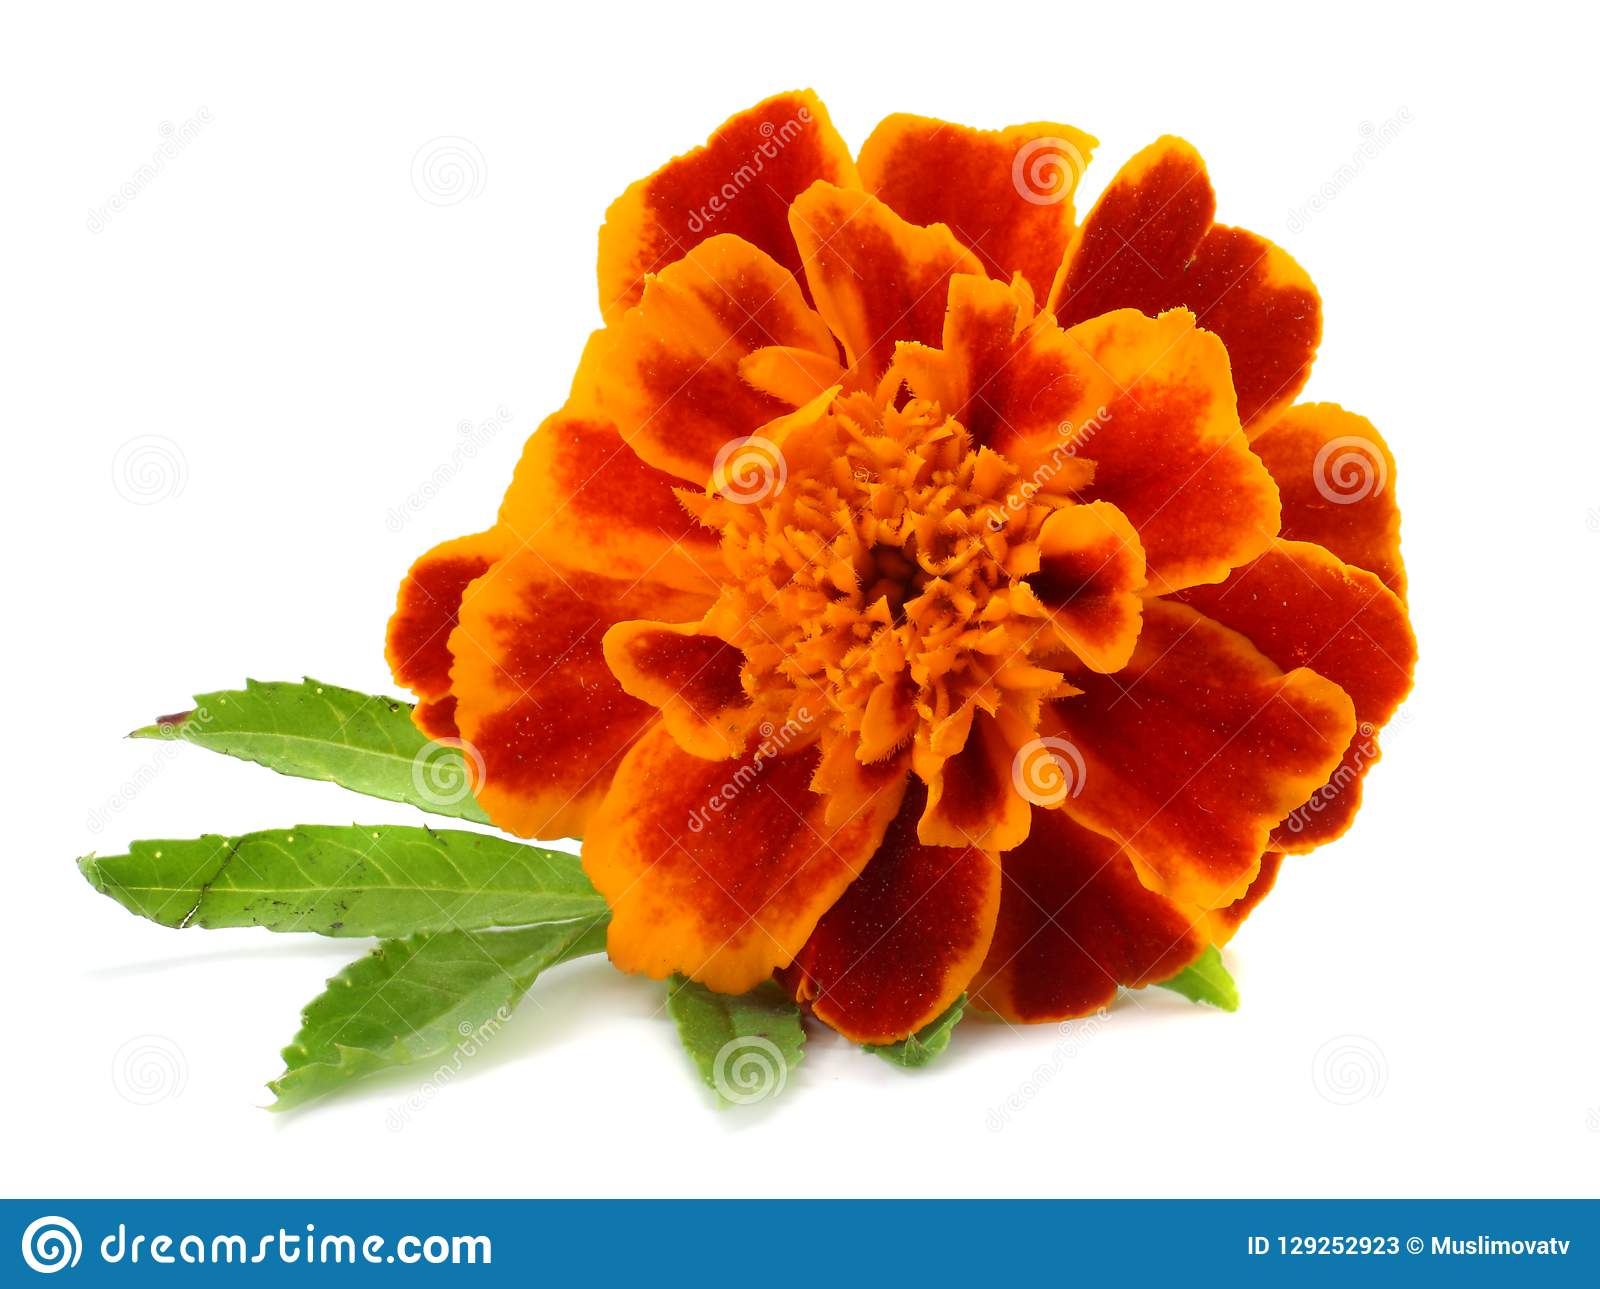 Orange Marigold flower, Tagetes erecta, Mexican marigold, Aztec marigold, African marigold isolated on white background